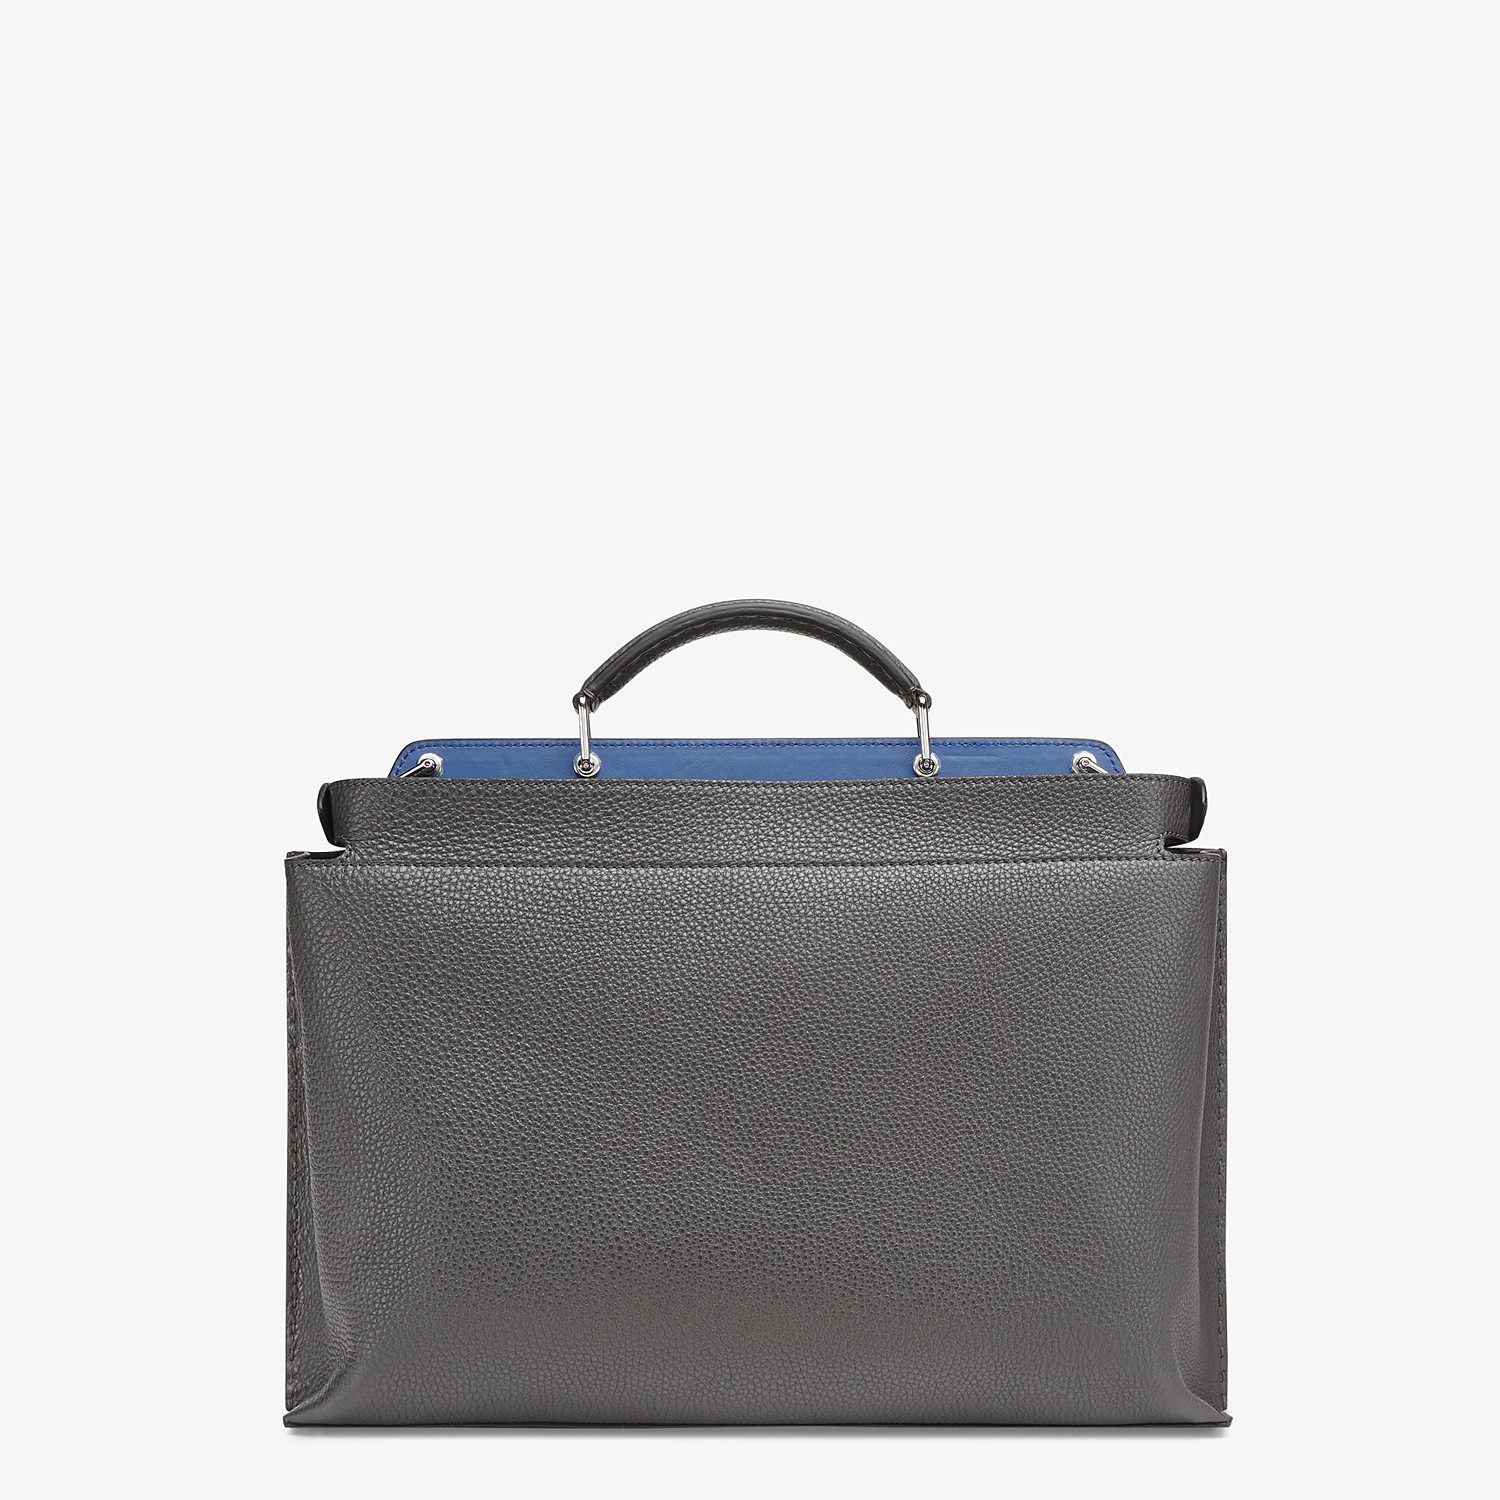 FENDI PEEKABOO ICONIC ESSENTIAL - Gray leather bag - view 3 detail